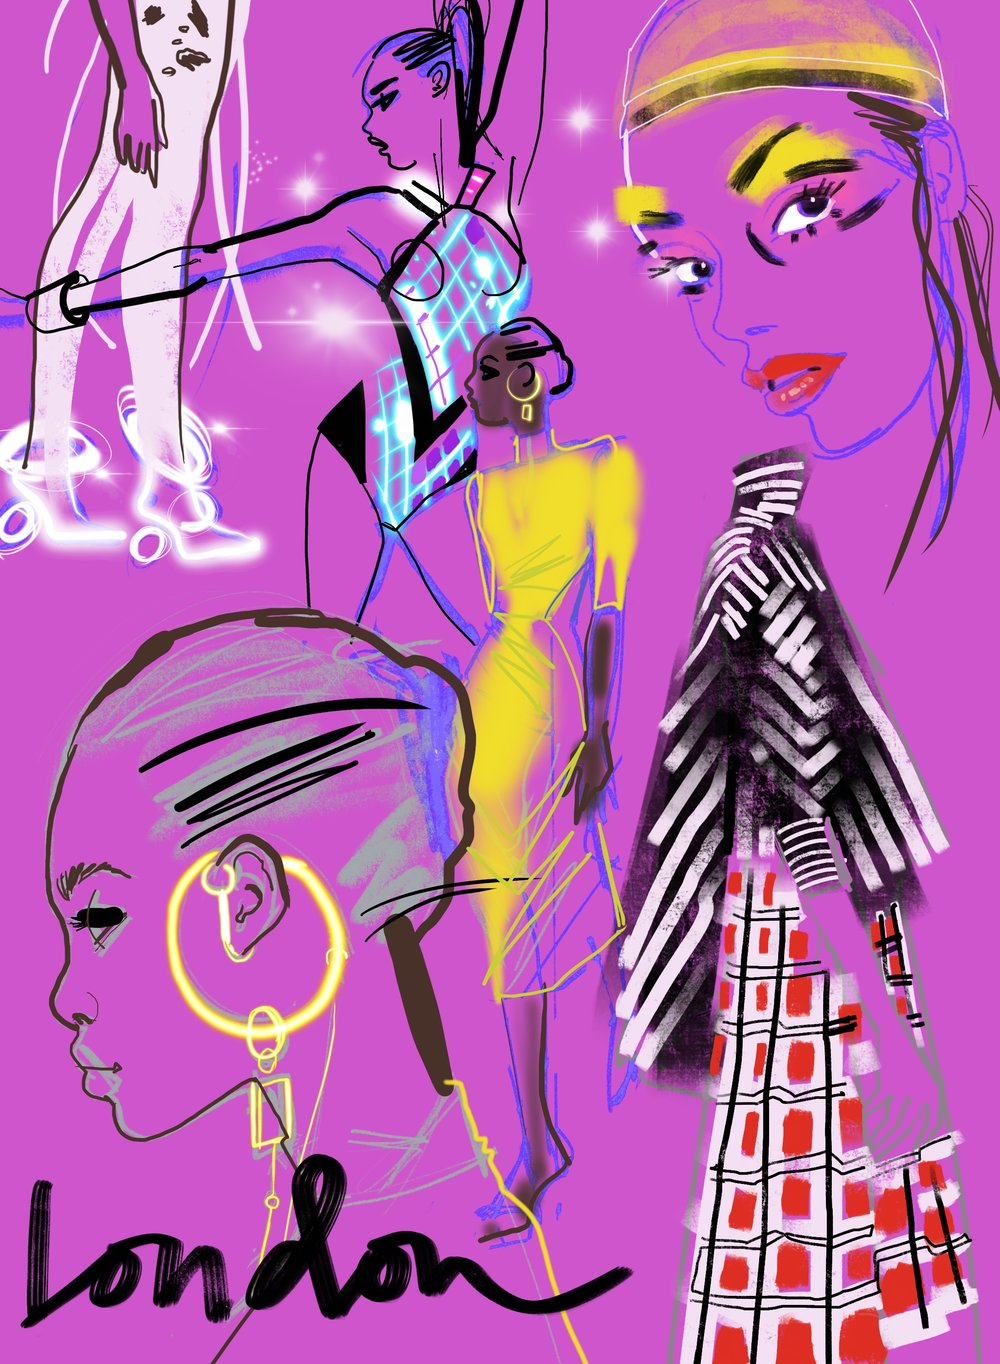 London Fashion Week  iPad Pro illustration for  IF Magazine   Spring 2019 Womenswear collections